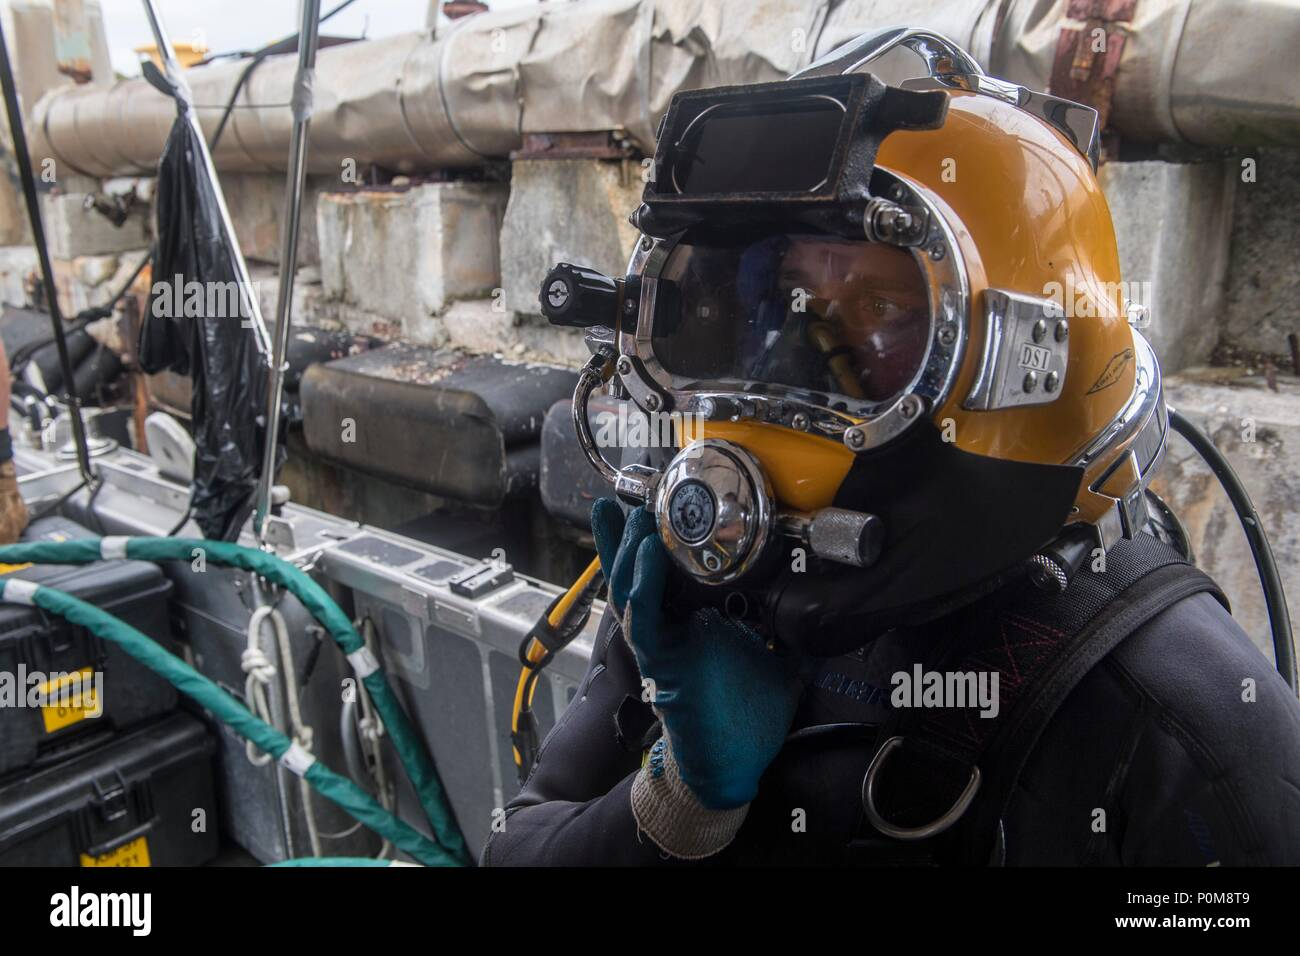 Construction Mechanic 2nd Class Andersen Gardner, from Fairport New York, attached to Underwater Construction Team (UCT) 2 performs dive operations in Apra Harbor, Guam June 6, 2018. UCT 2 specializes in the construction, inspection, maintenance, and repair of underwater and waterfront facilities in support of the Pacific Fleet. (U.S. Navy photo by Mass Communication Specialist 3rd Class Kryzentia Richards/Released) Stock Photo